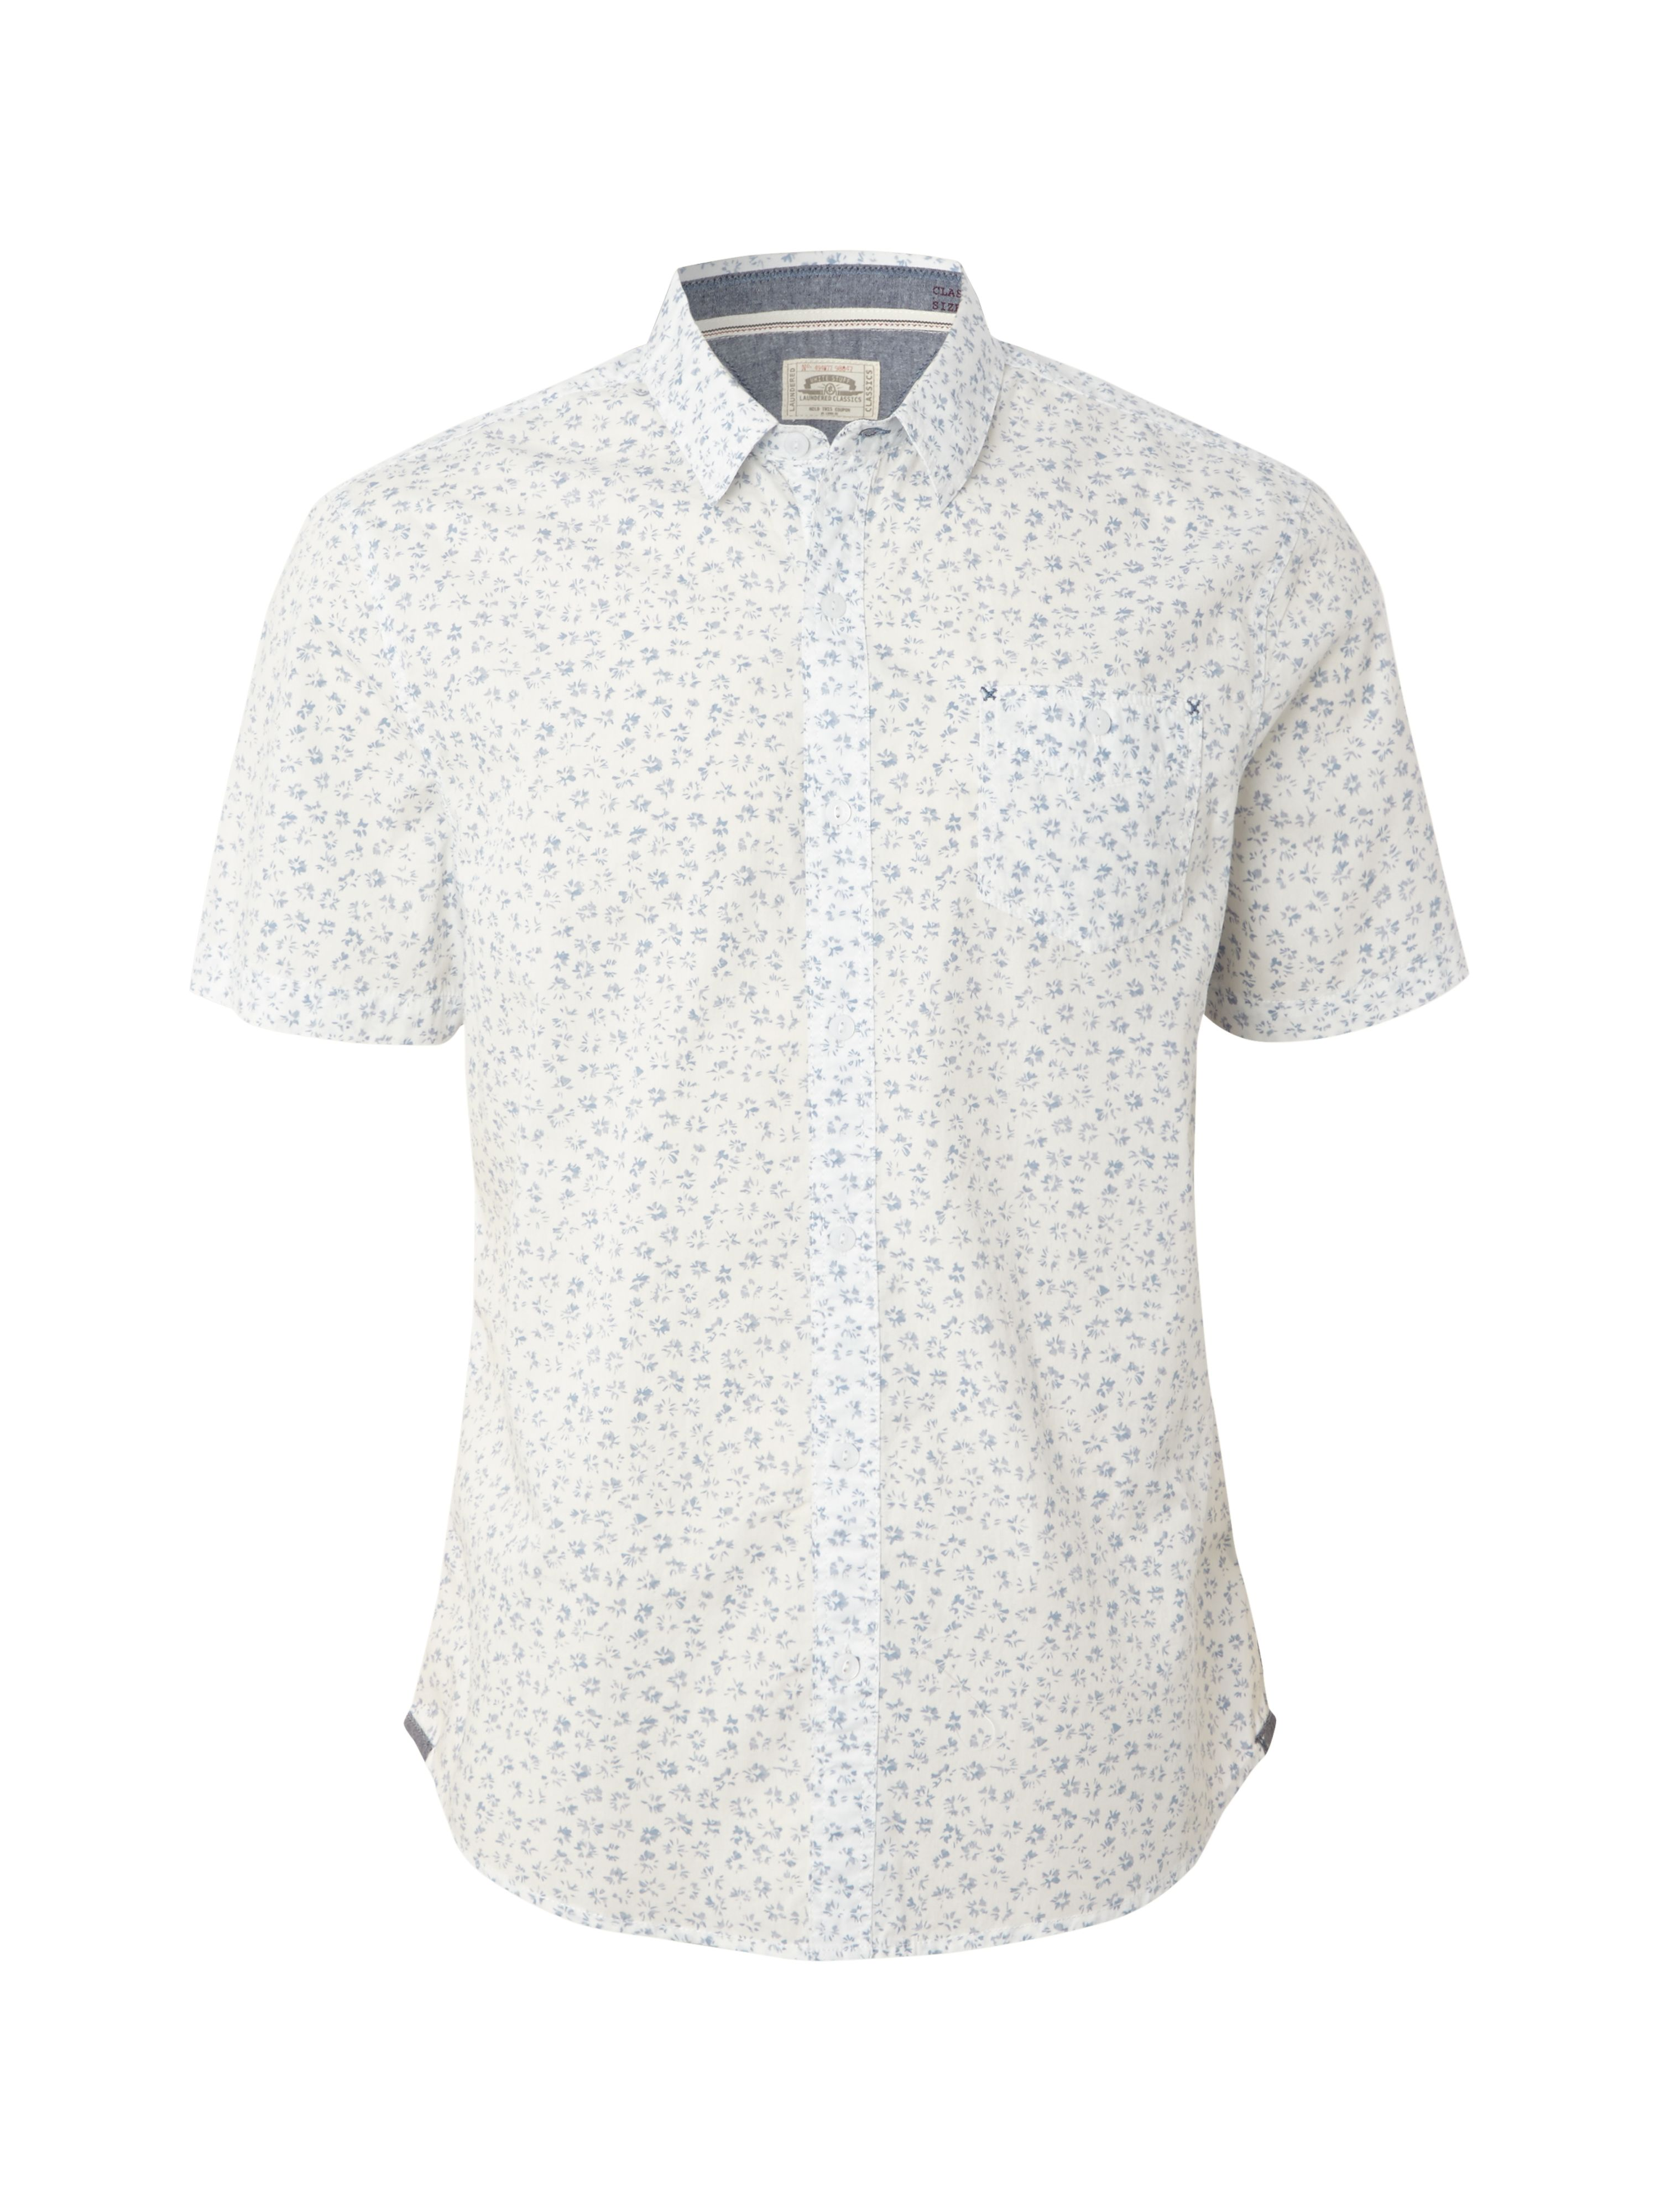 Daventry short sleeve shirt